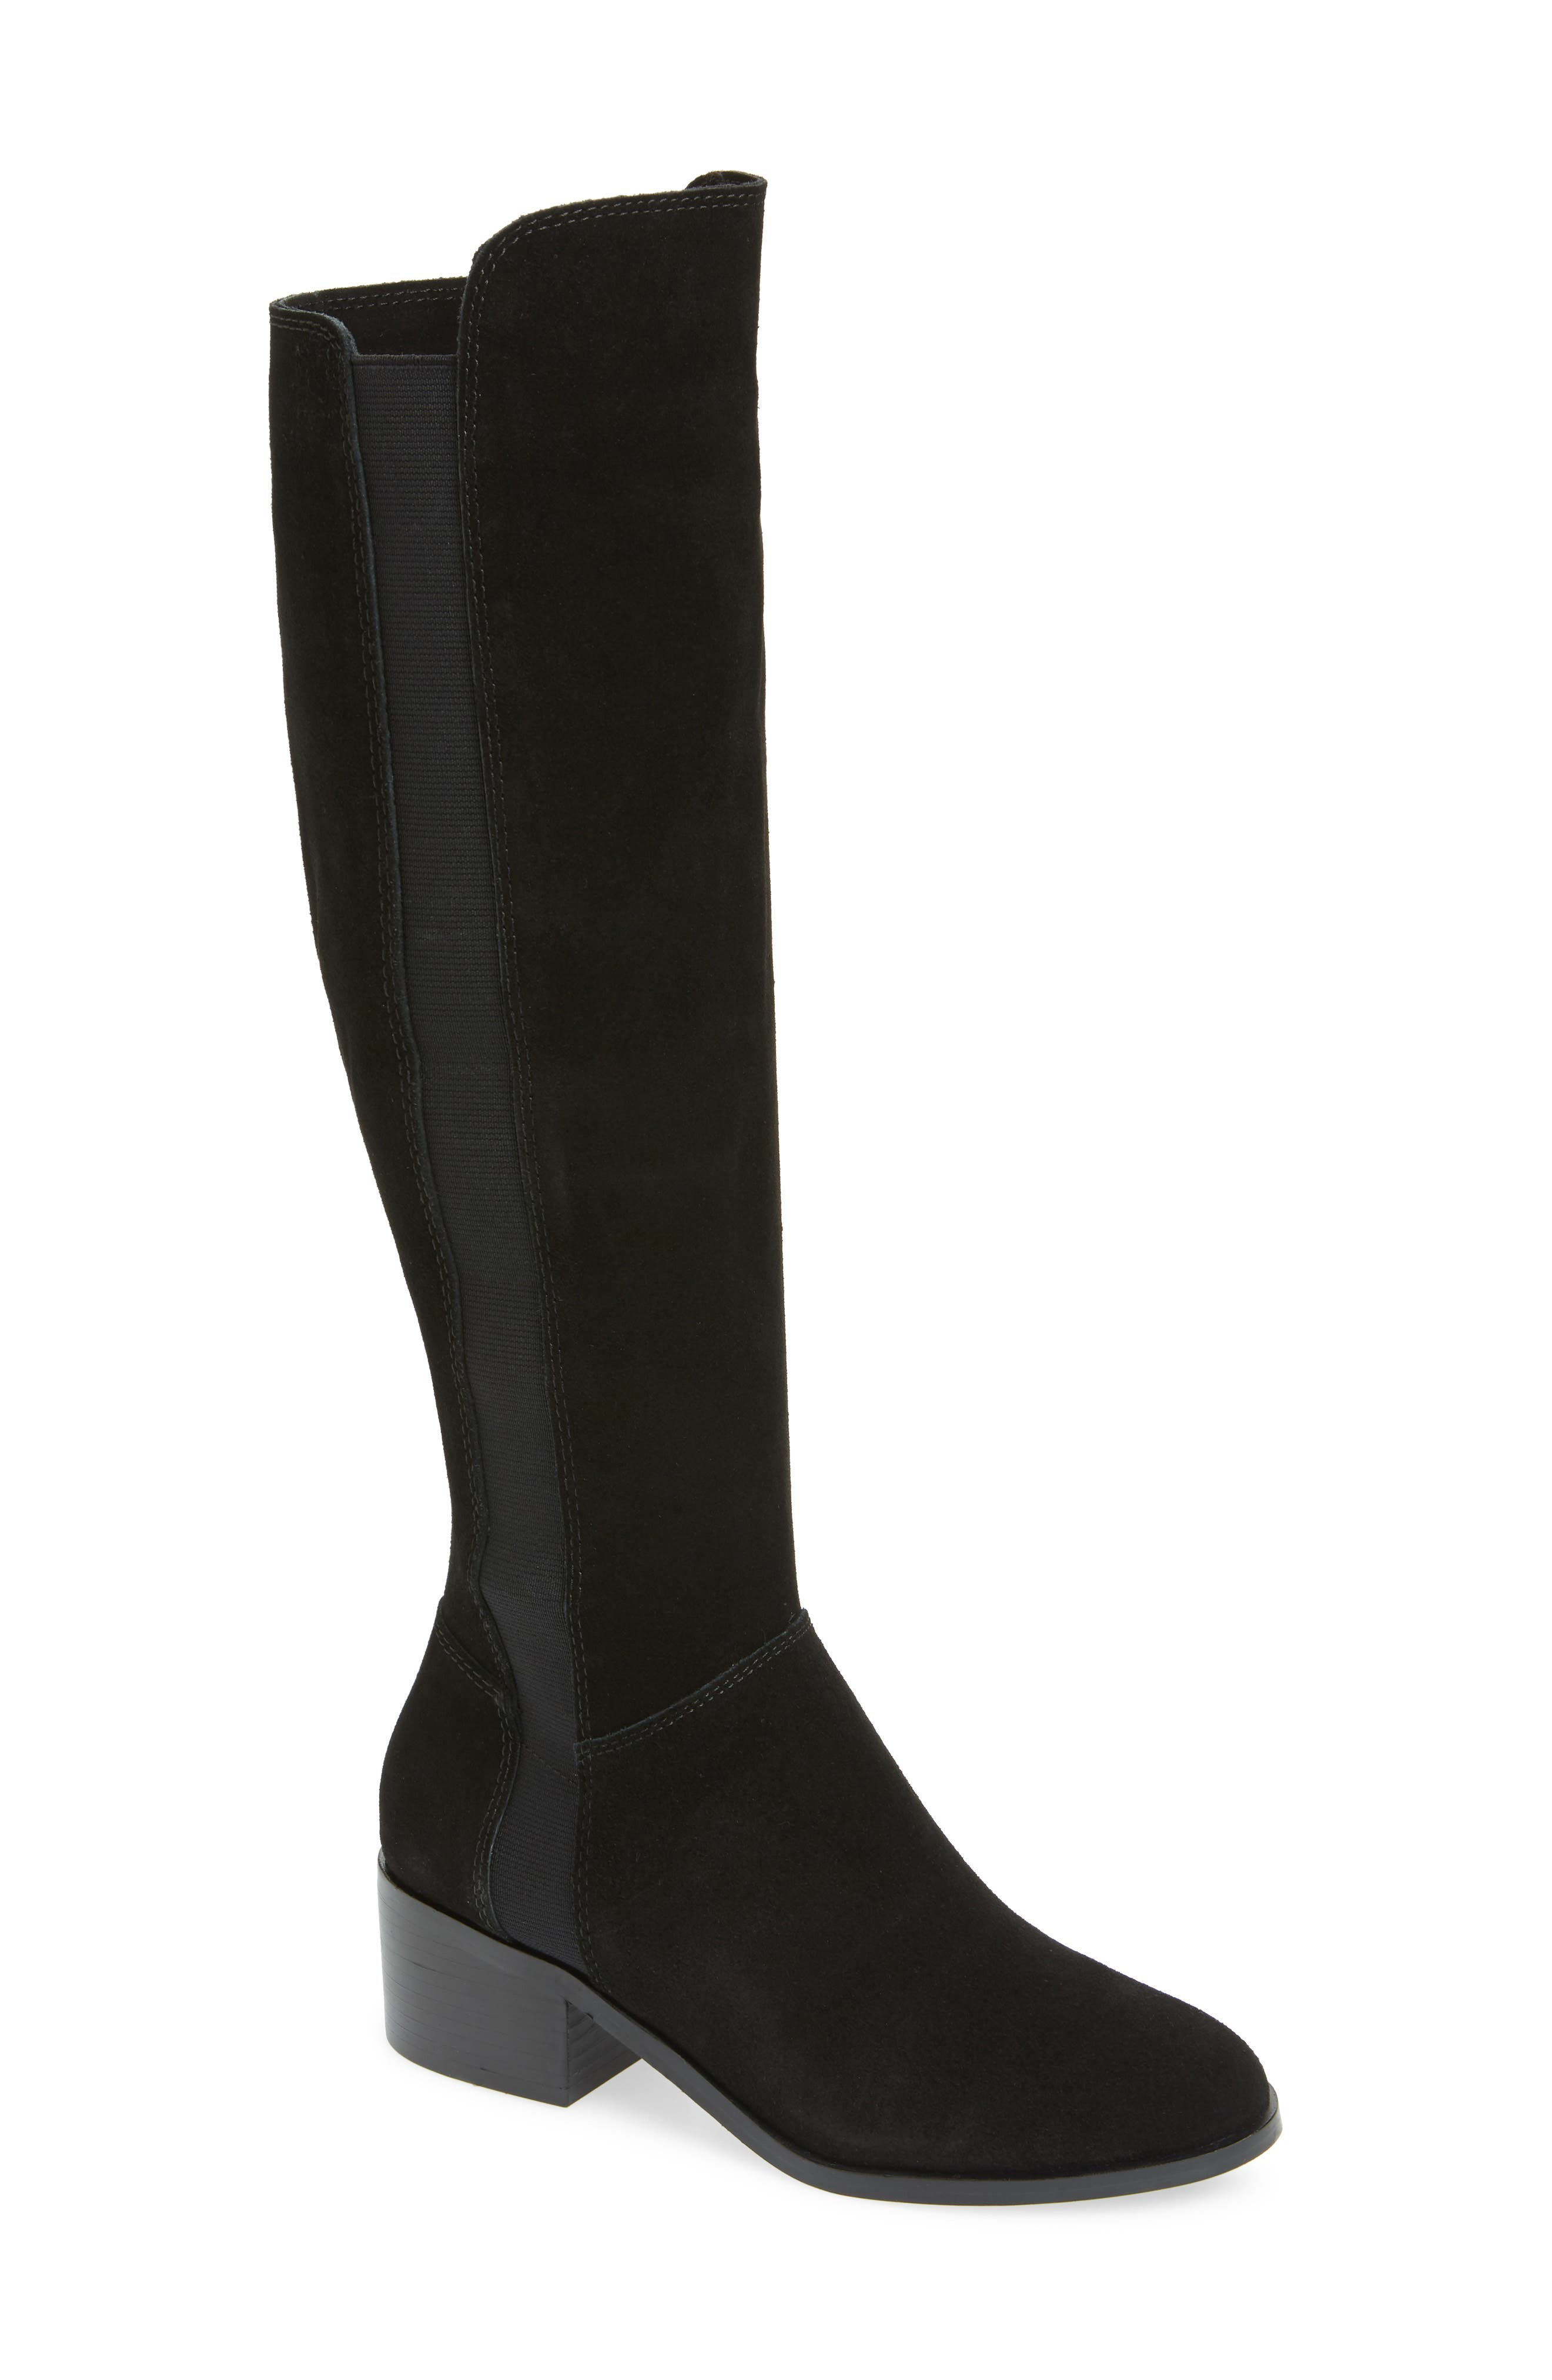 Giselle Over the Knee Boot,                             Main thumbnail 1, color,                             BLACK SUEDE